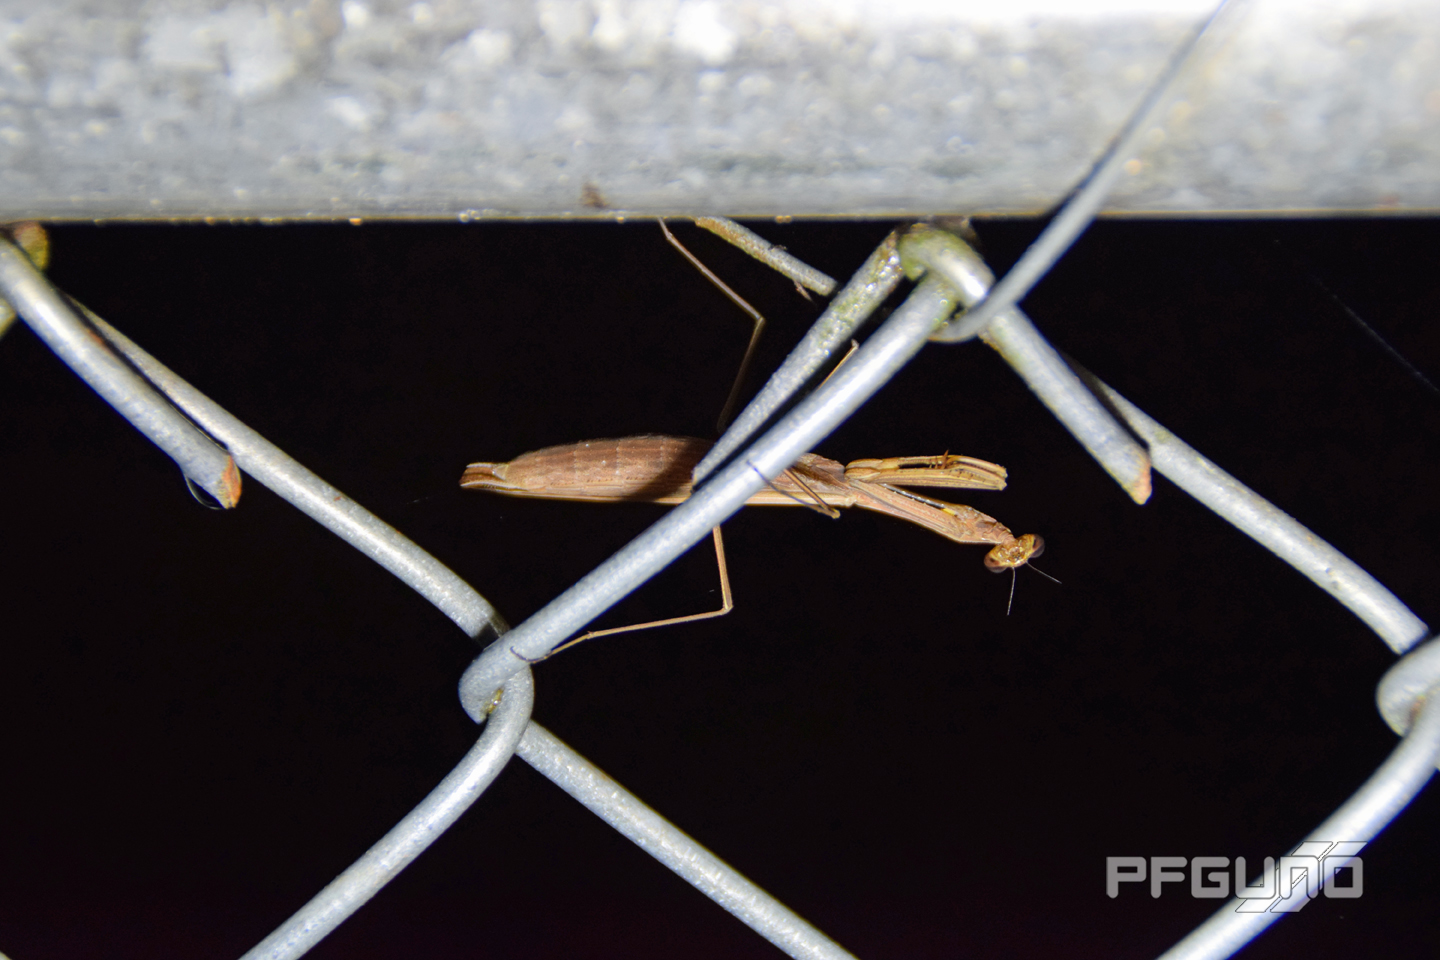 Upside Down Mantis